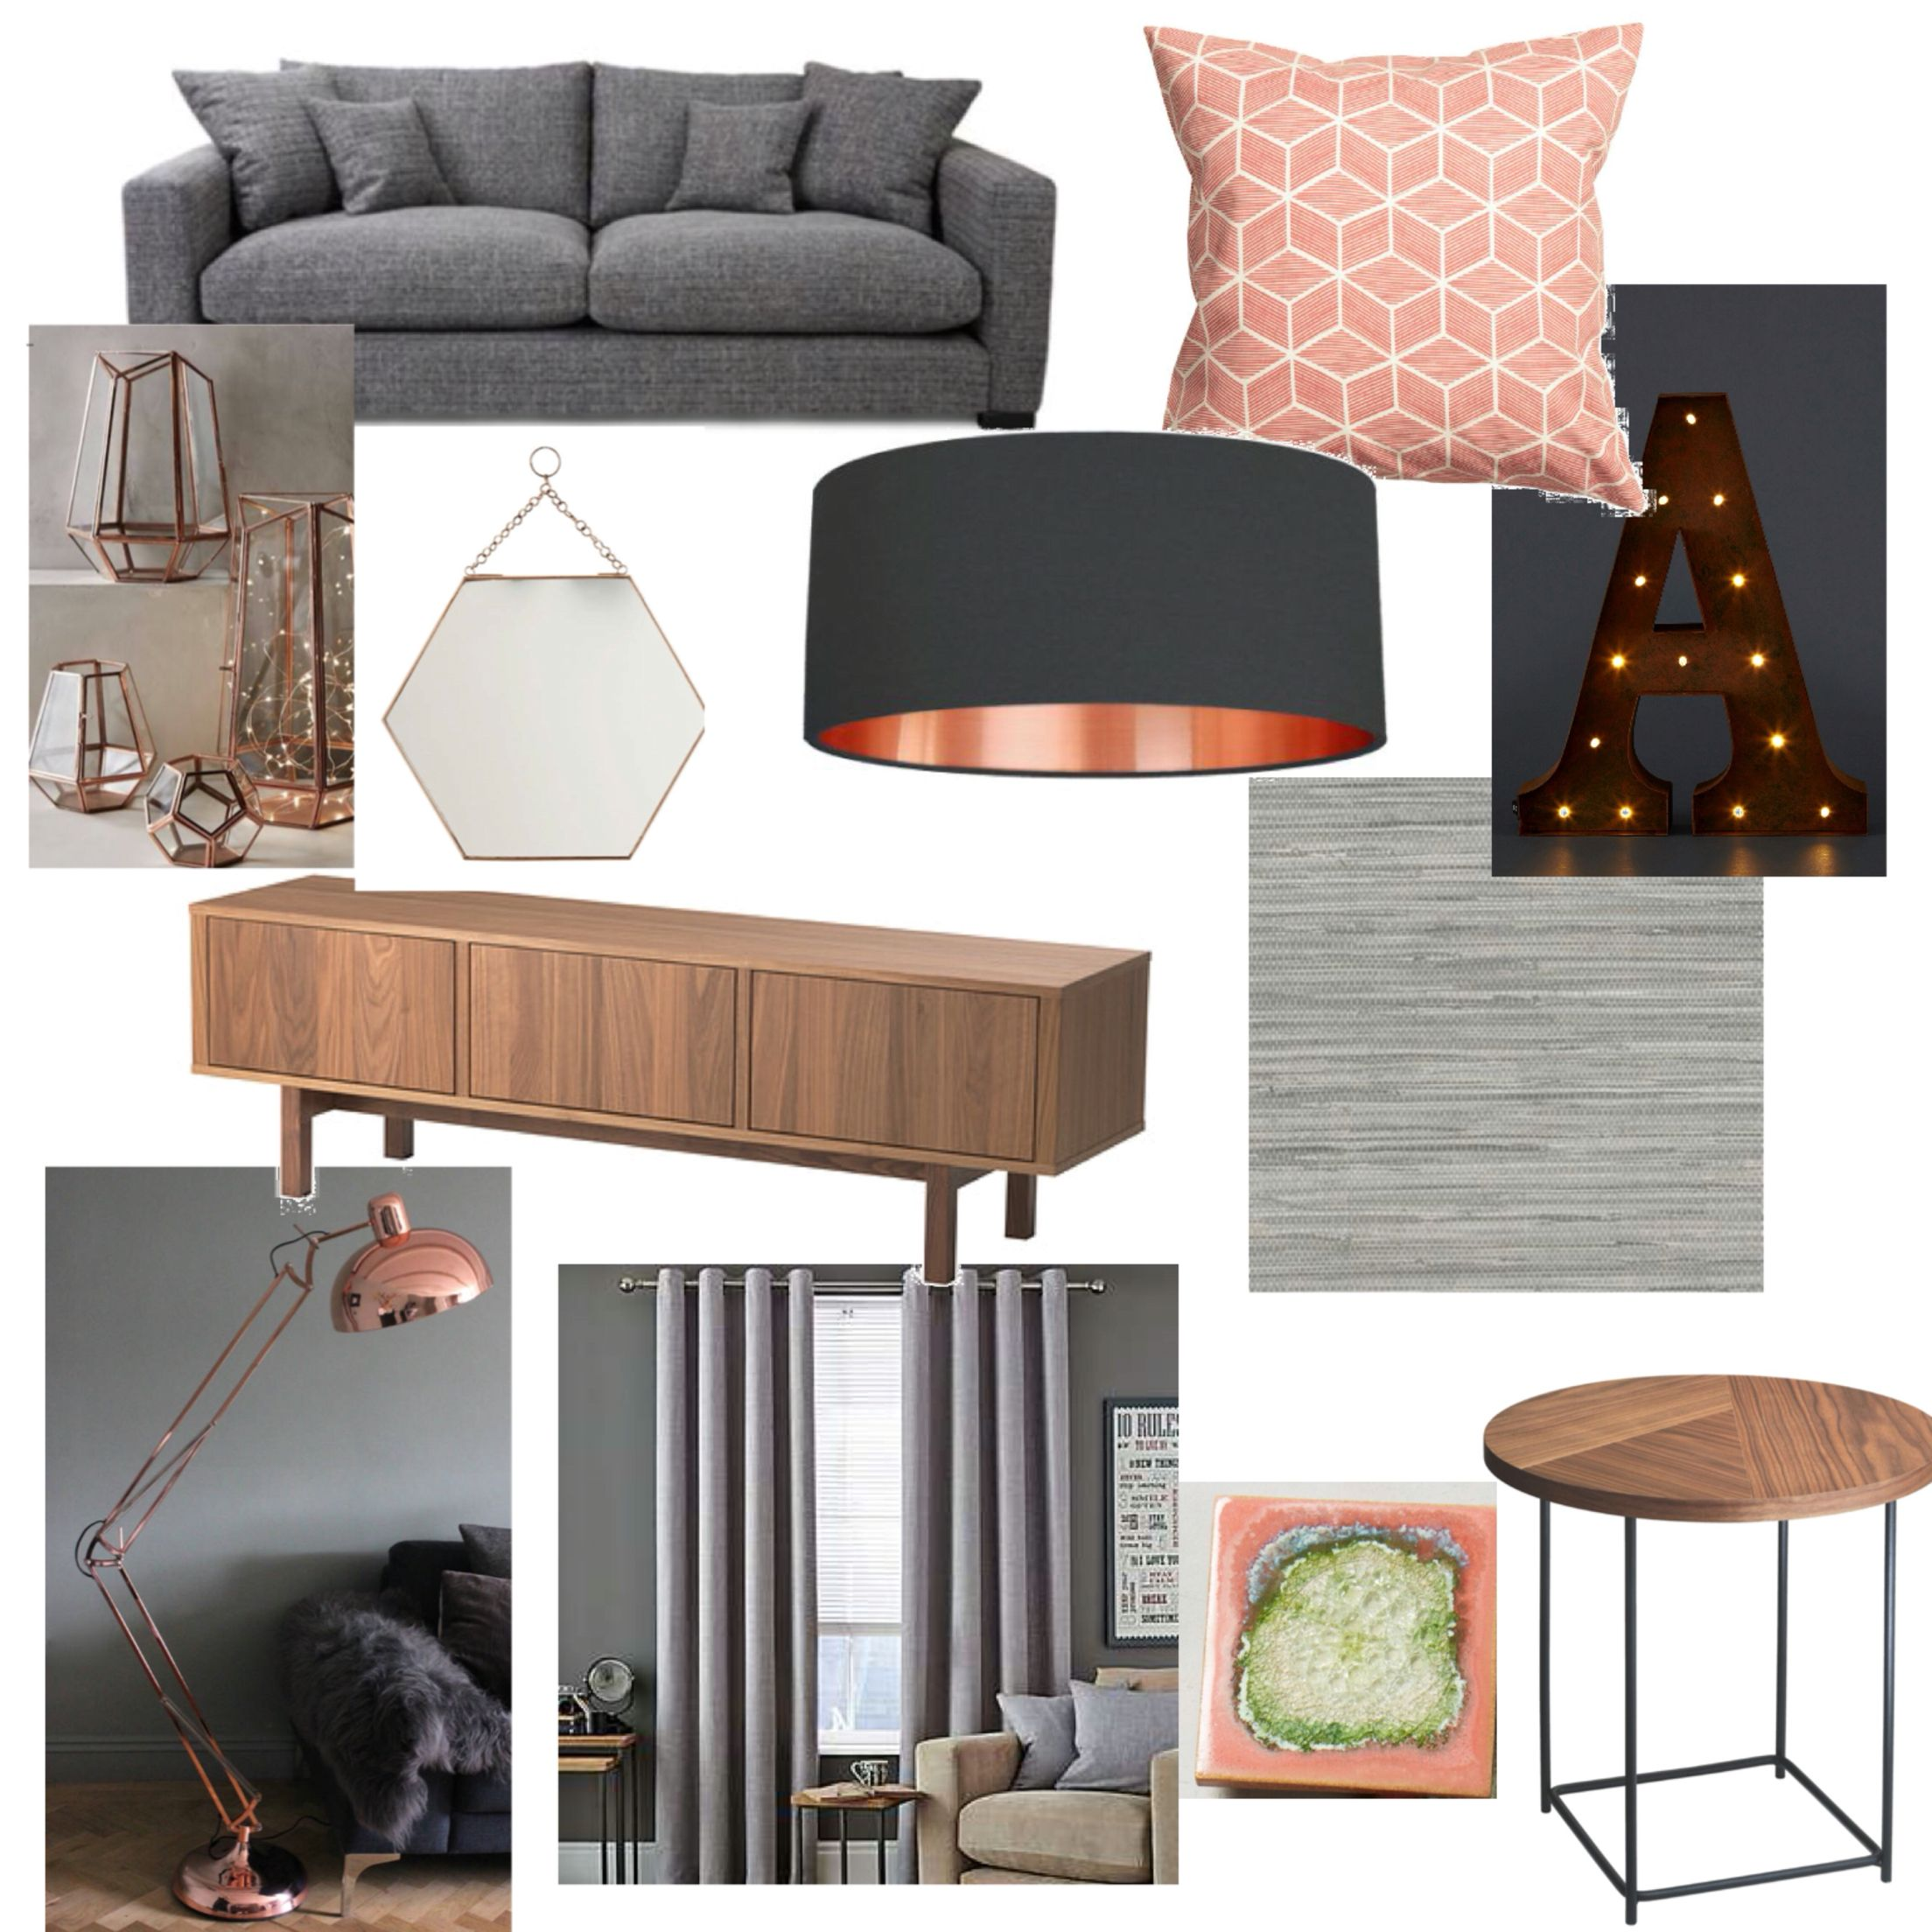 Room Decor Bedroom Decor Und: Grey, Blush & Copper Living Room